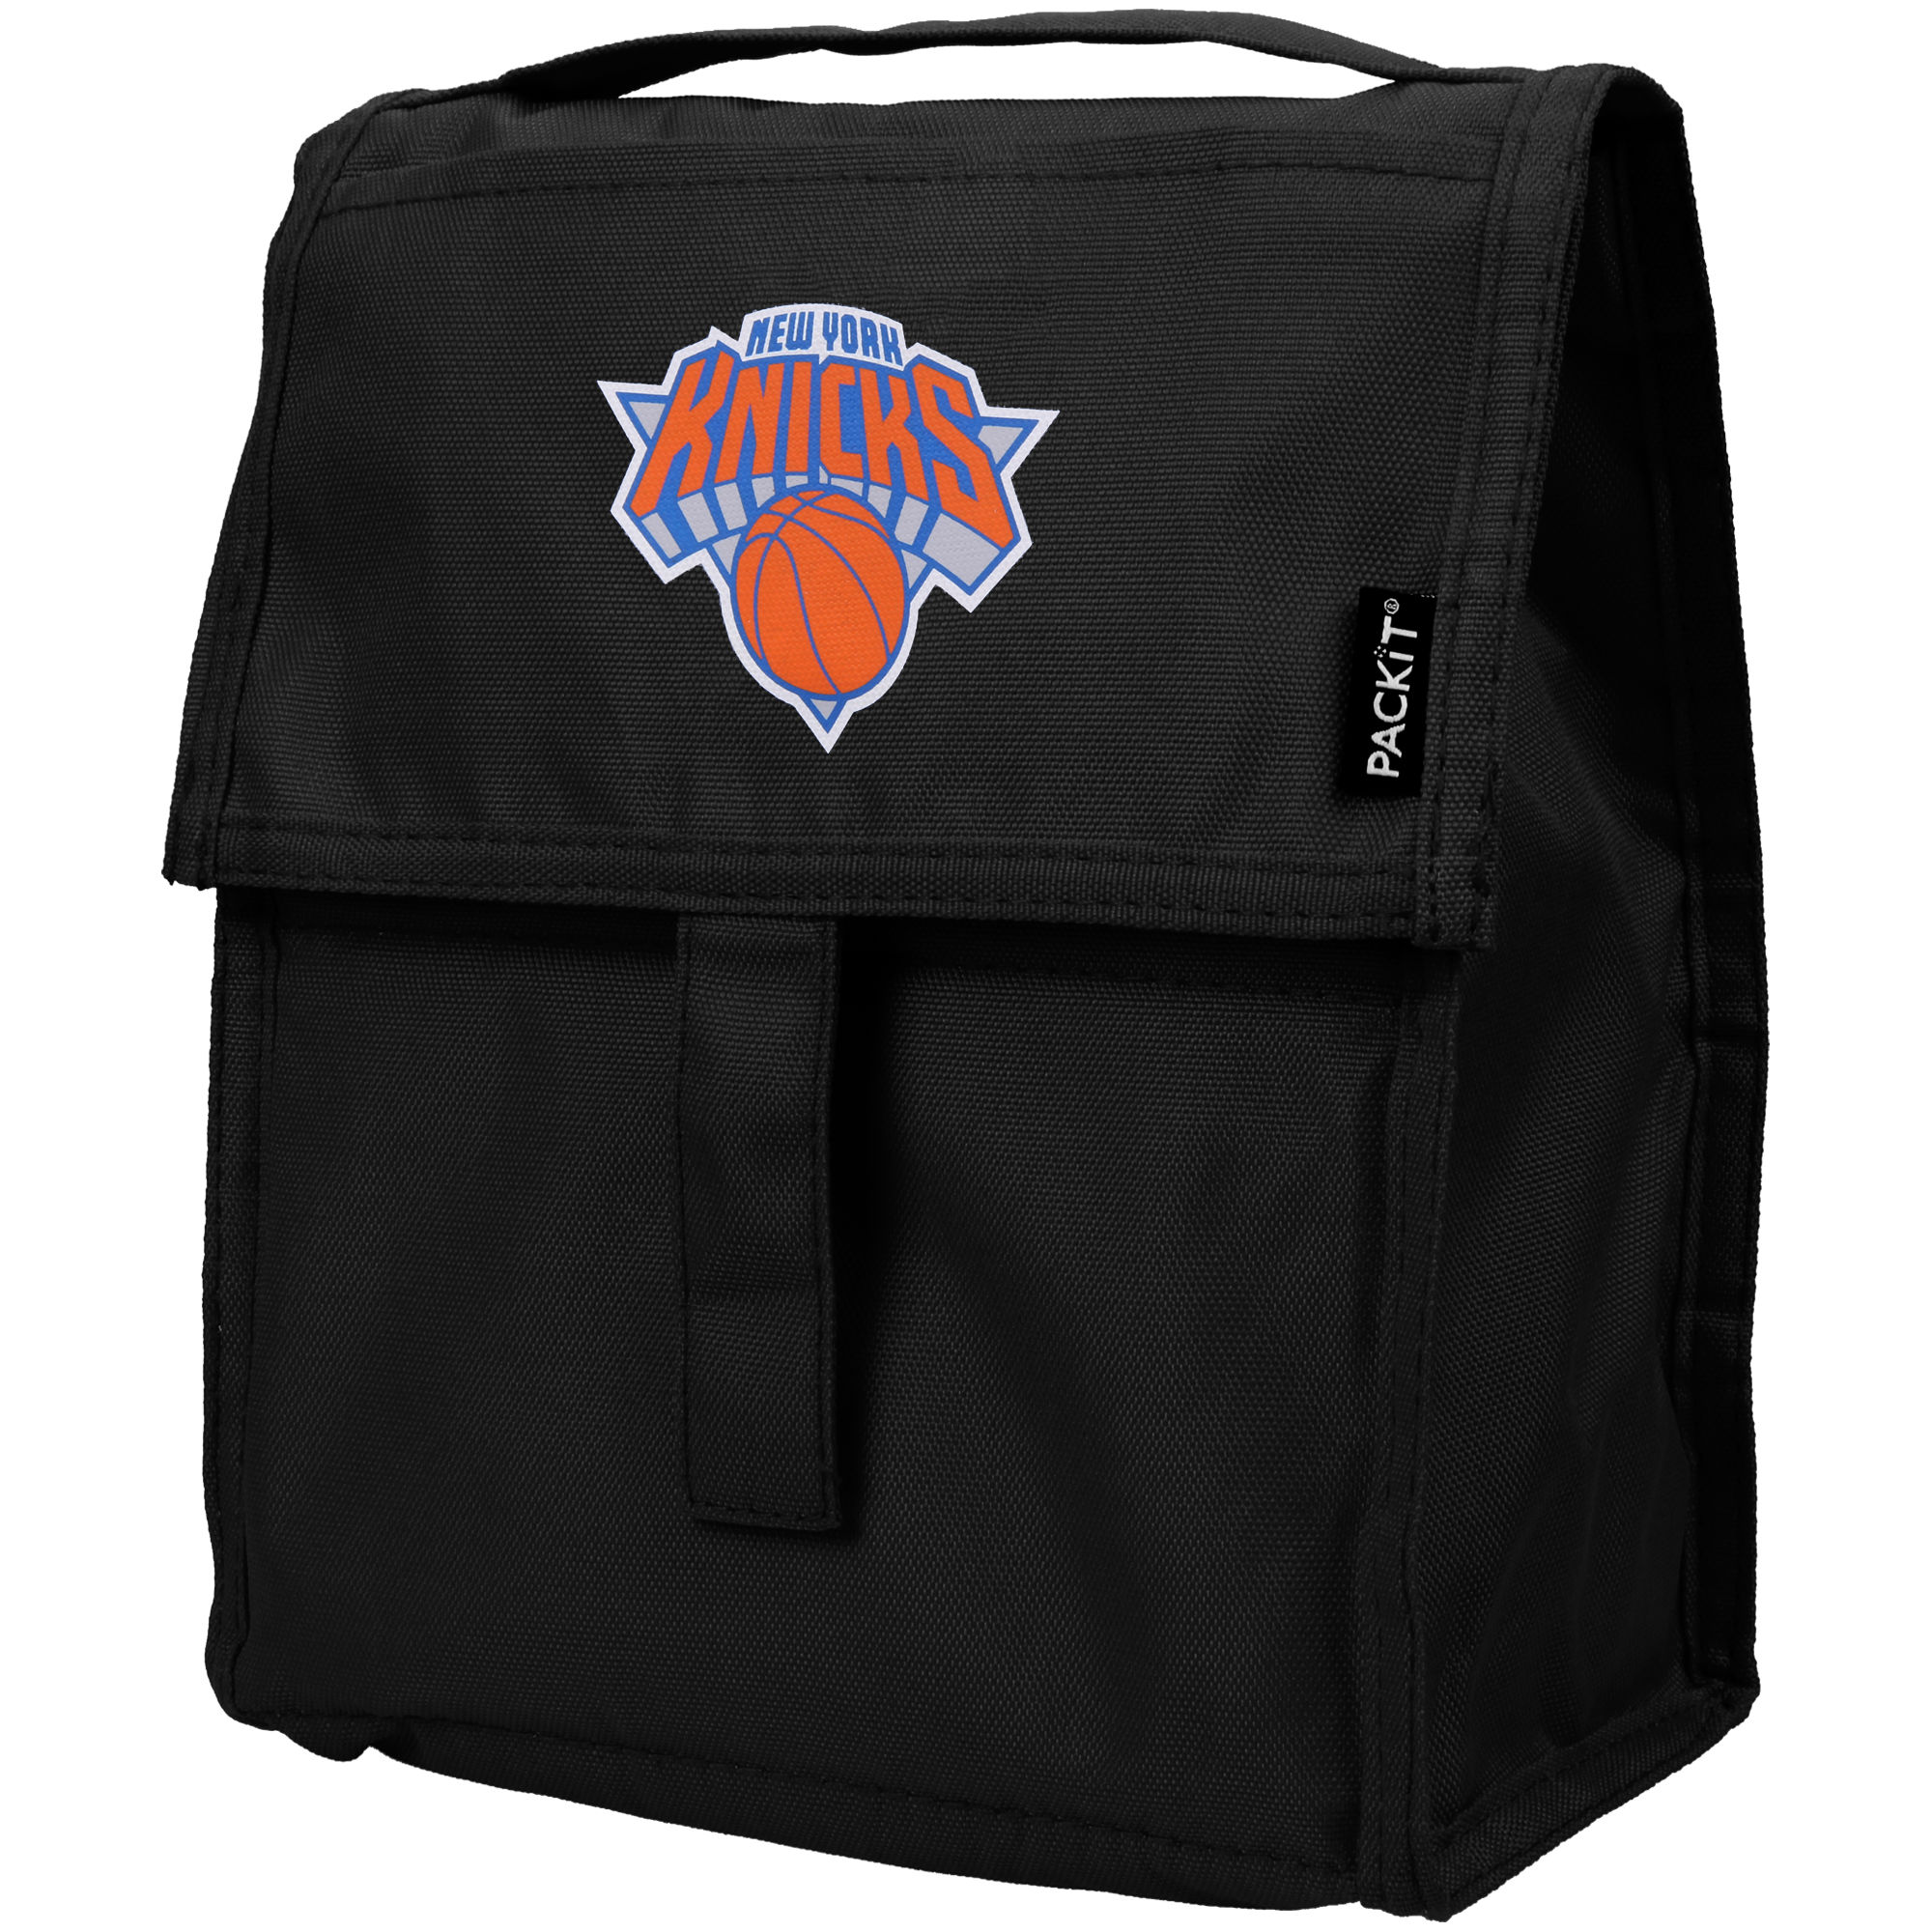 New York Knicks PackIt Lunch Box - No Size